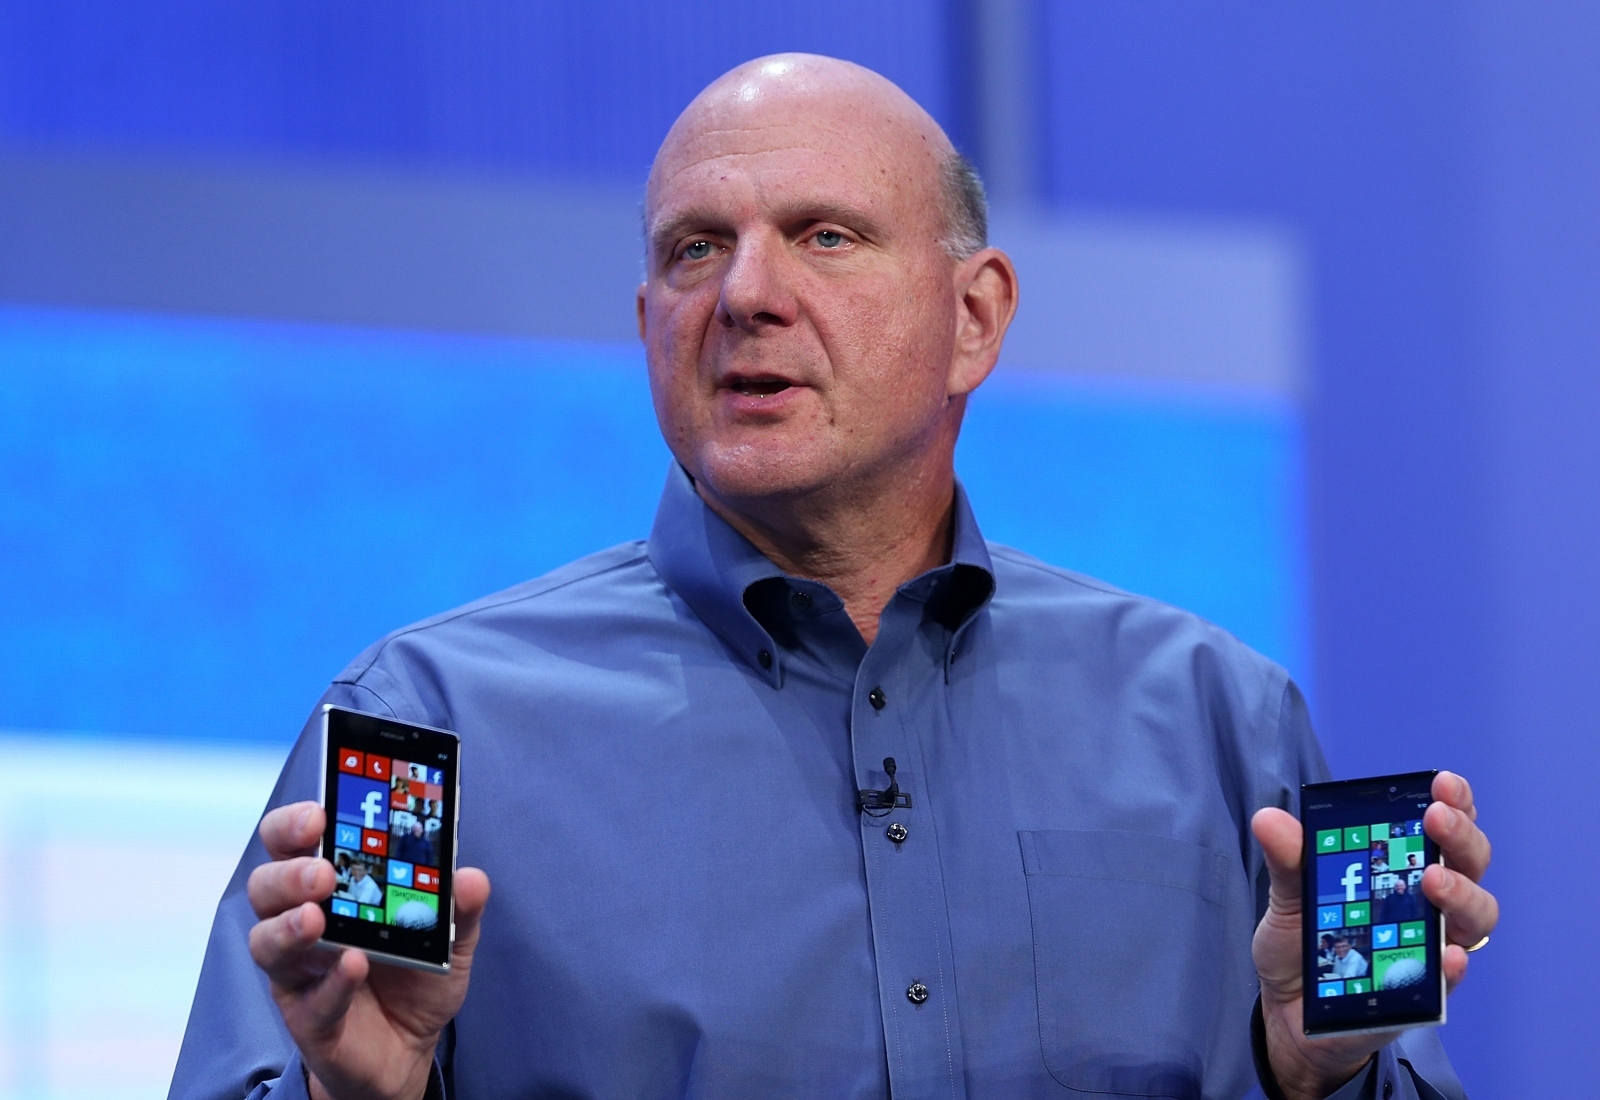 Steve Ballmer talks about Microsoft's hardware capabilities